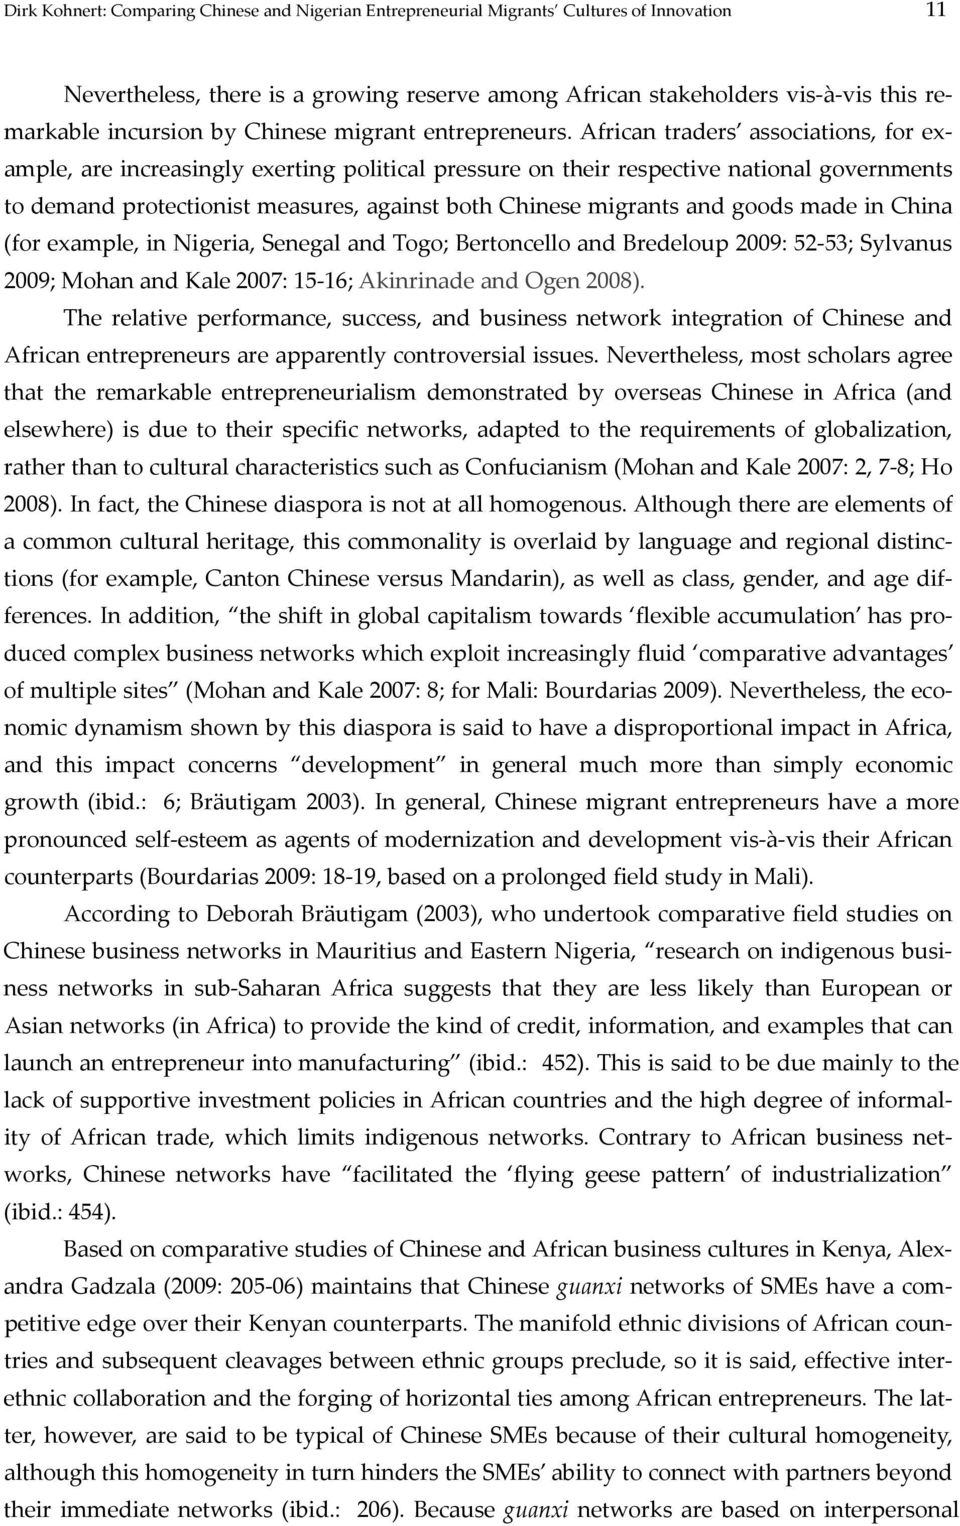 African traders associations, for example, are increasingly exerting political pressure on their respective national governments to demand protectionist measures, against both Chinese migrants and